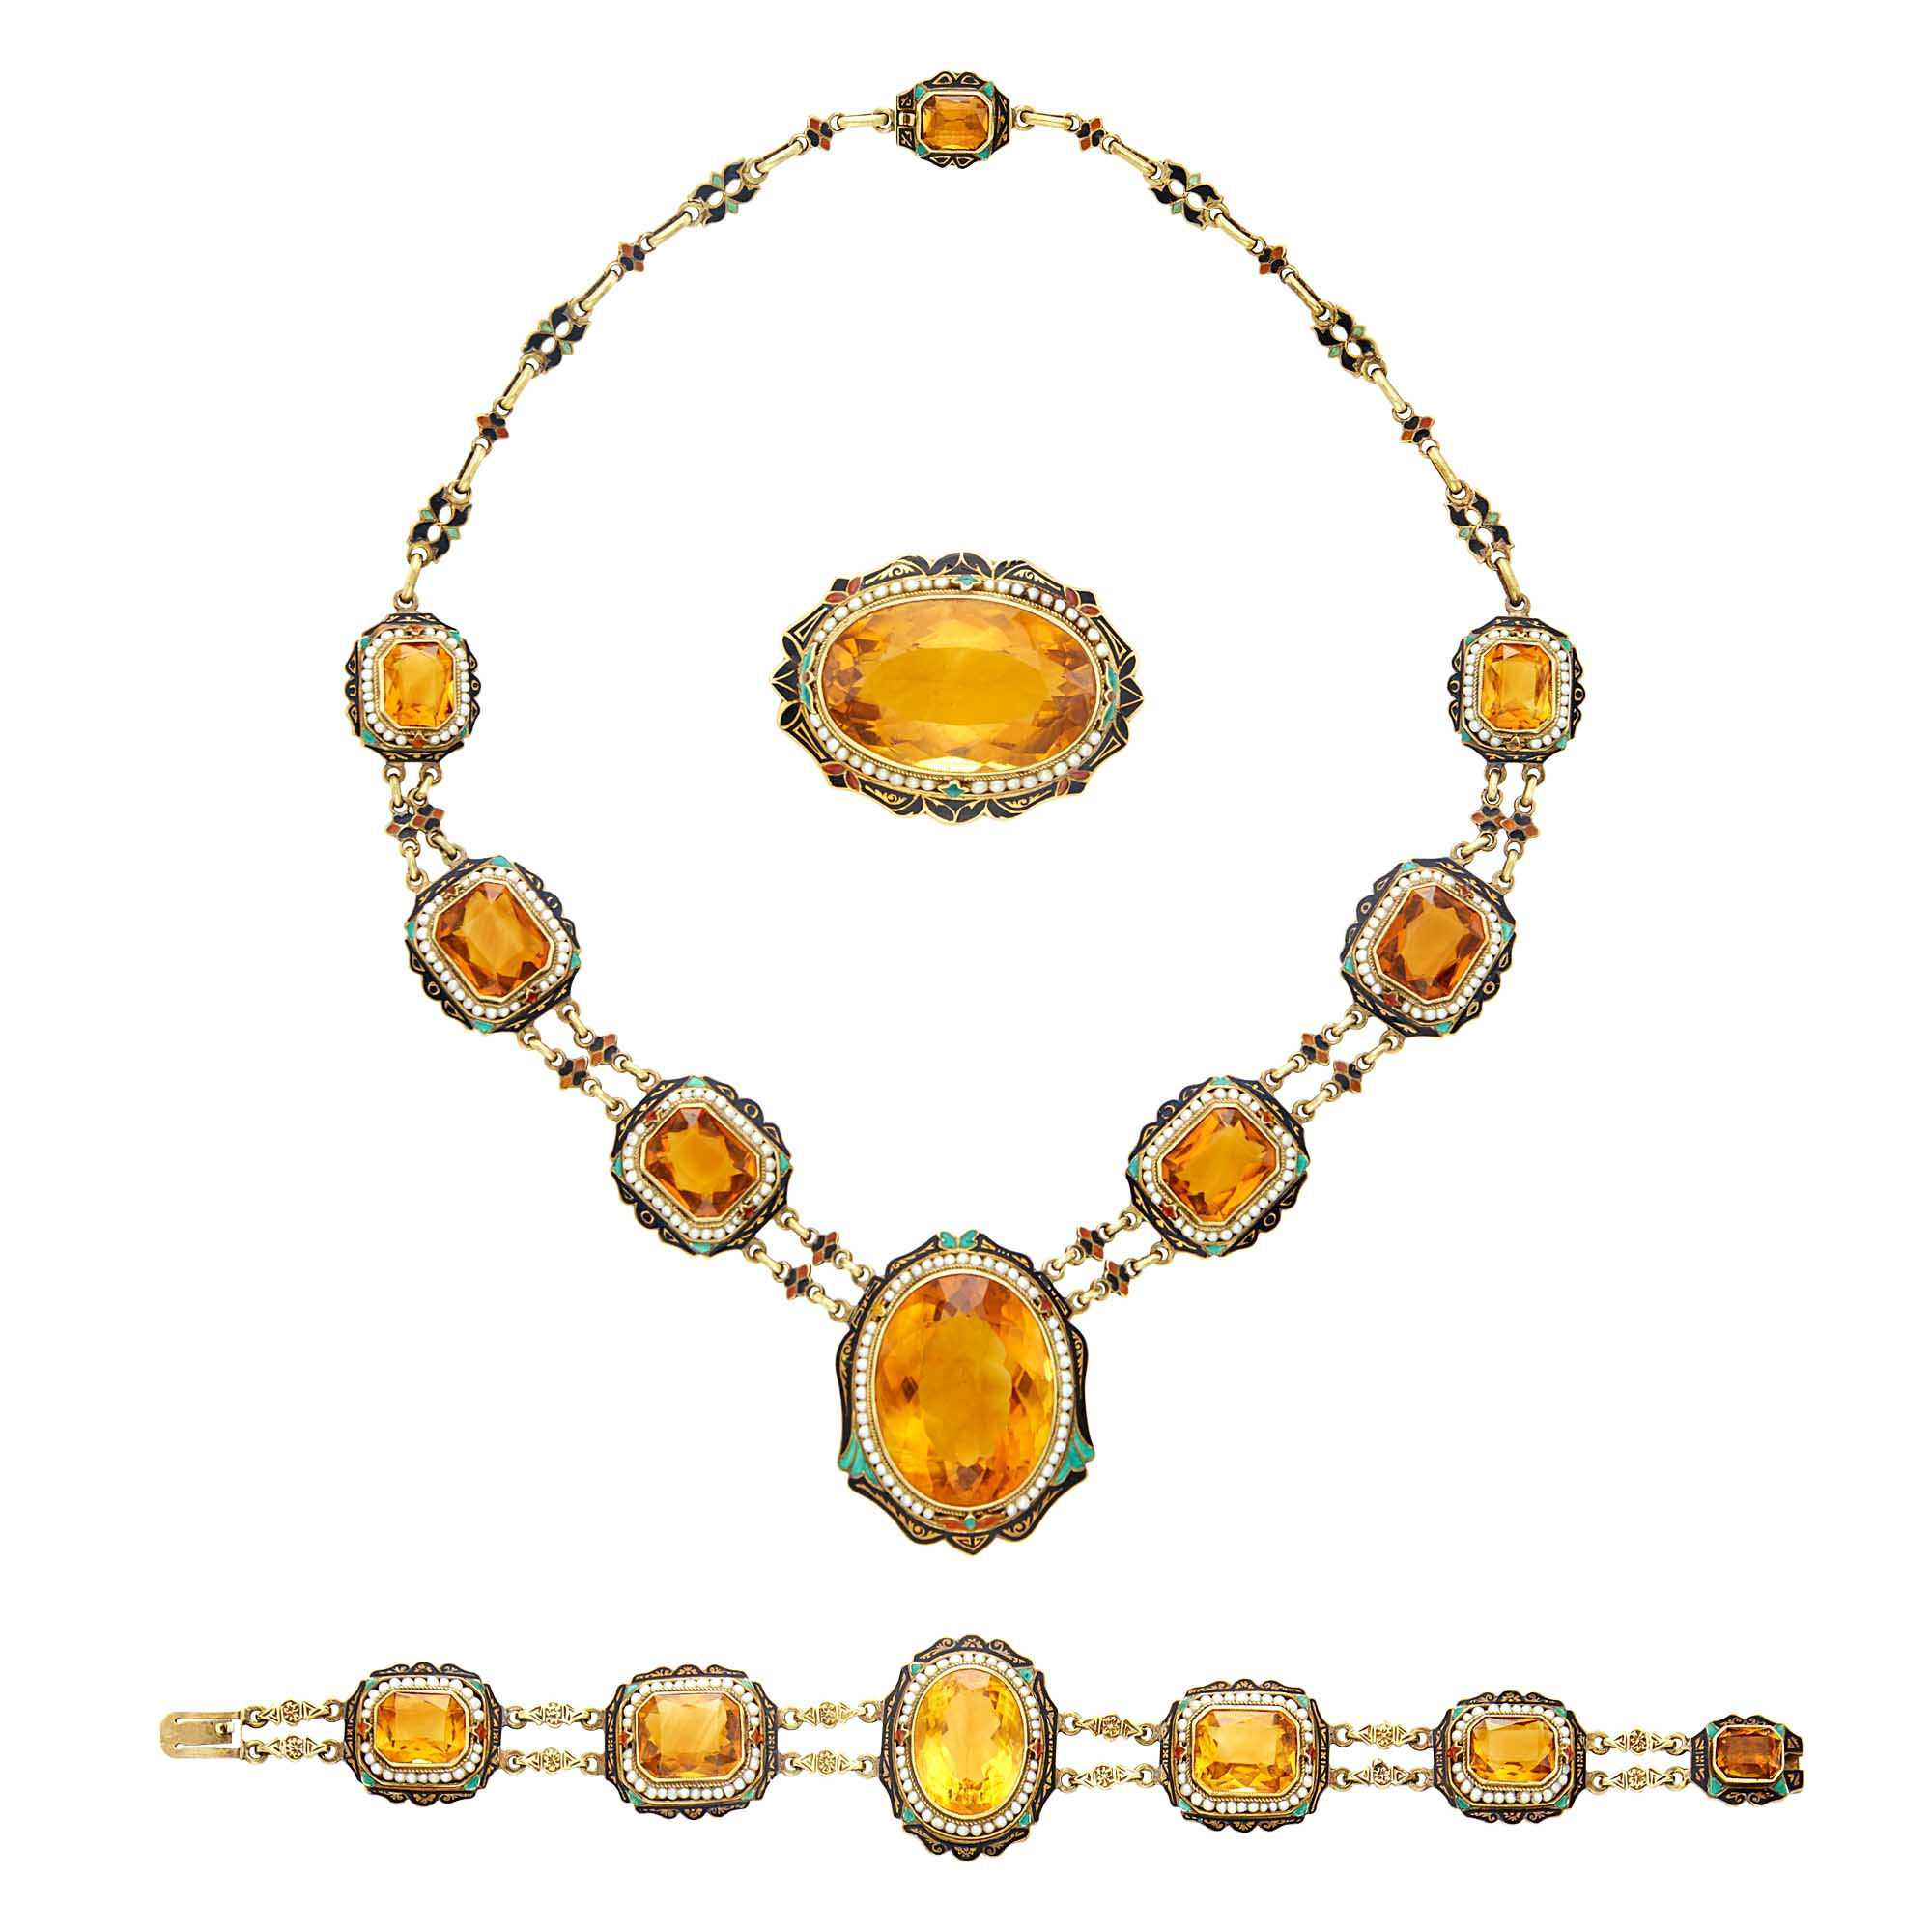 Lot image - Gold, Citrine, Seed Pearl and Enamel Necklace, Bracelet and Brooch